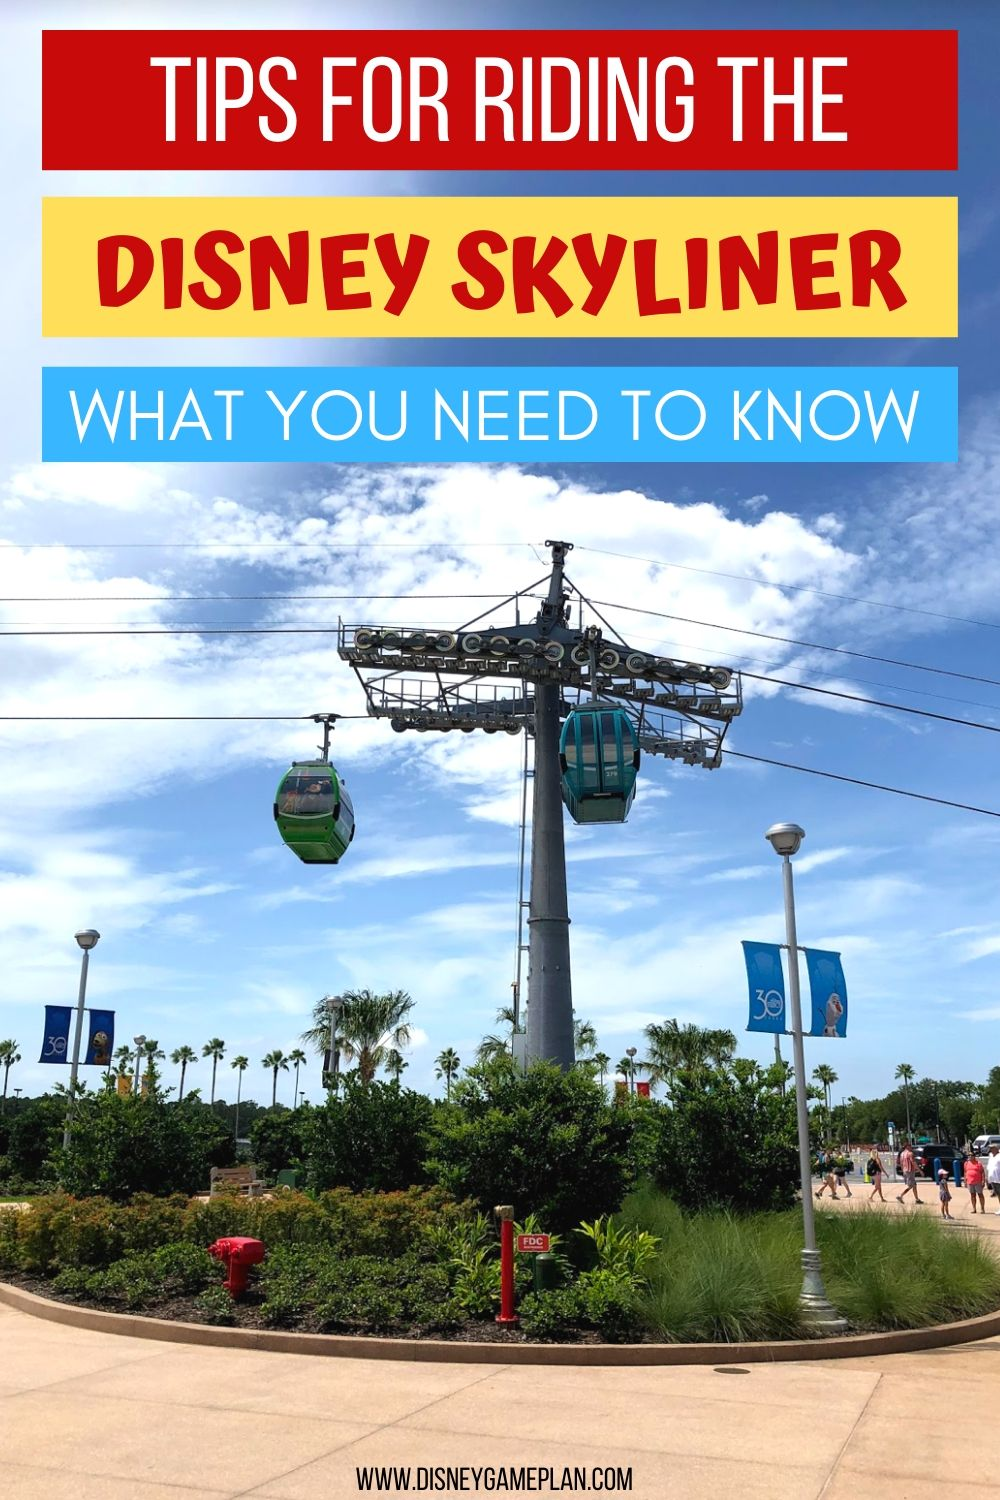 The Disney Skyliner is the newest form of transportation at Walt Disney World. Here are some things you should know about the Skyliner before you visit Walt Disney World including where it stops and how fast it goes. Check out this post for helpful Disney Planning Tips. #disneytips #disneyworld #disneyplanning #disneyhacks